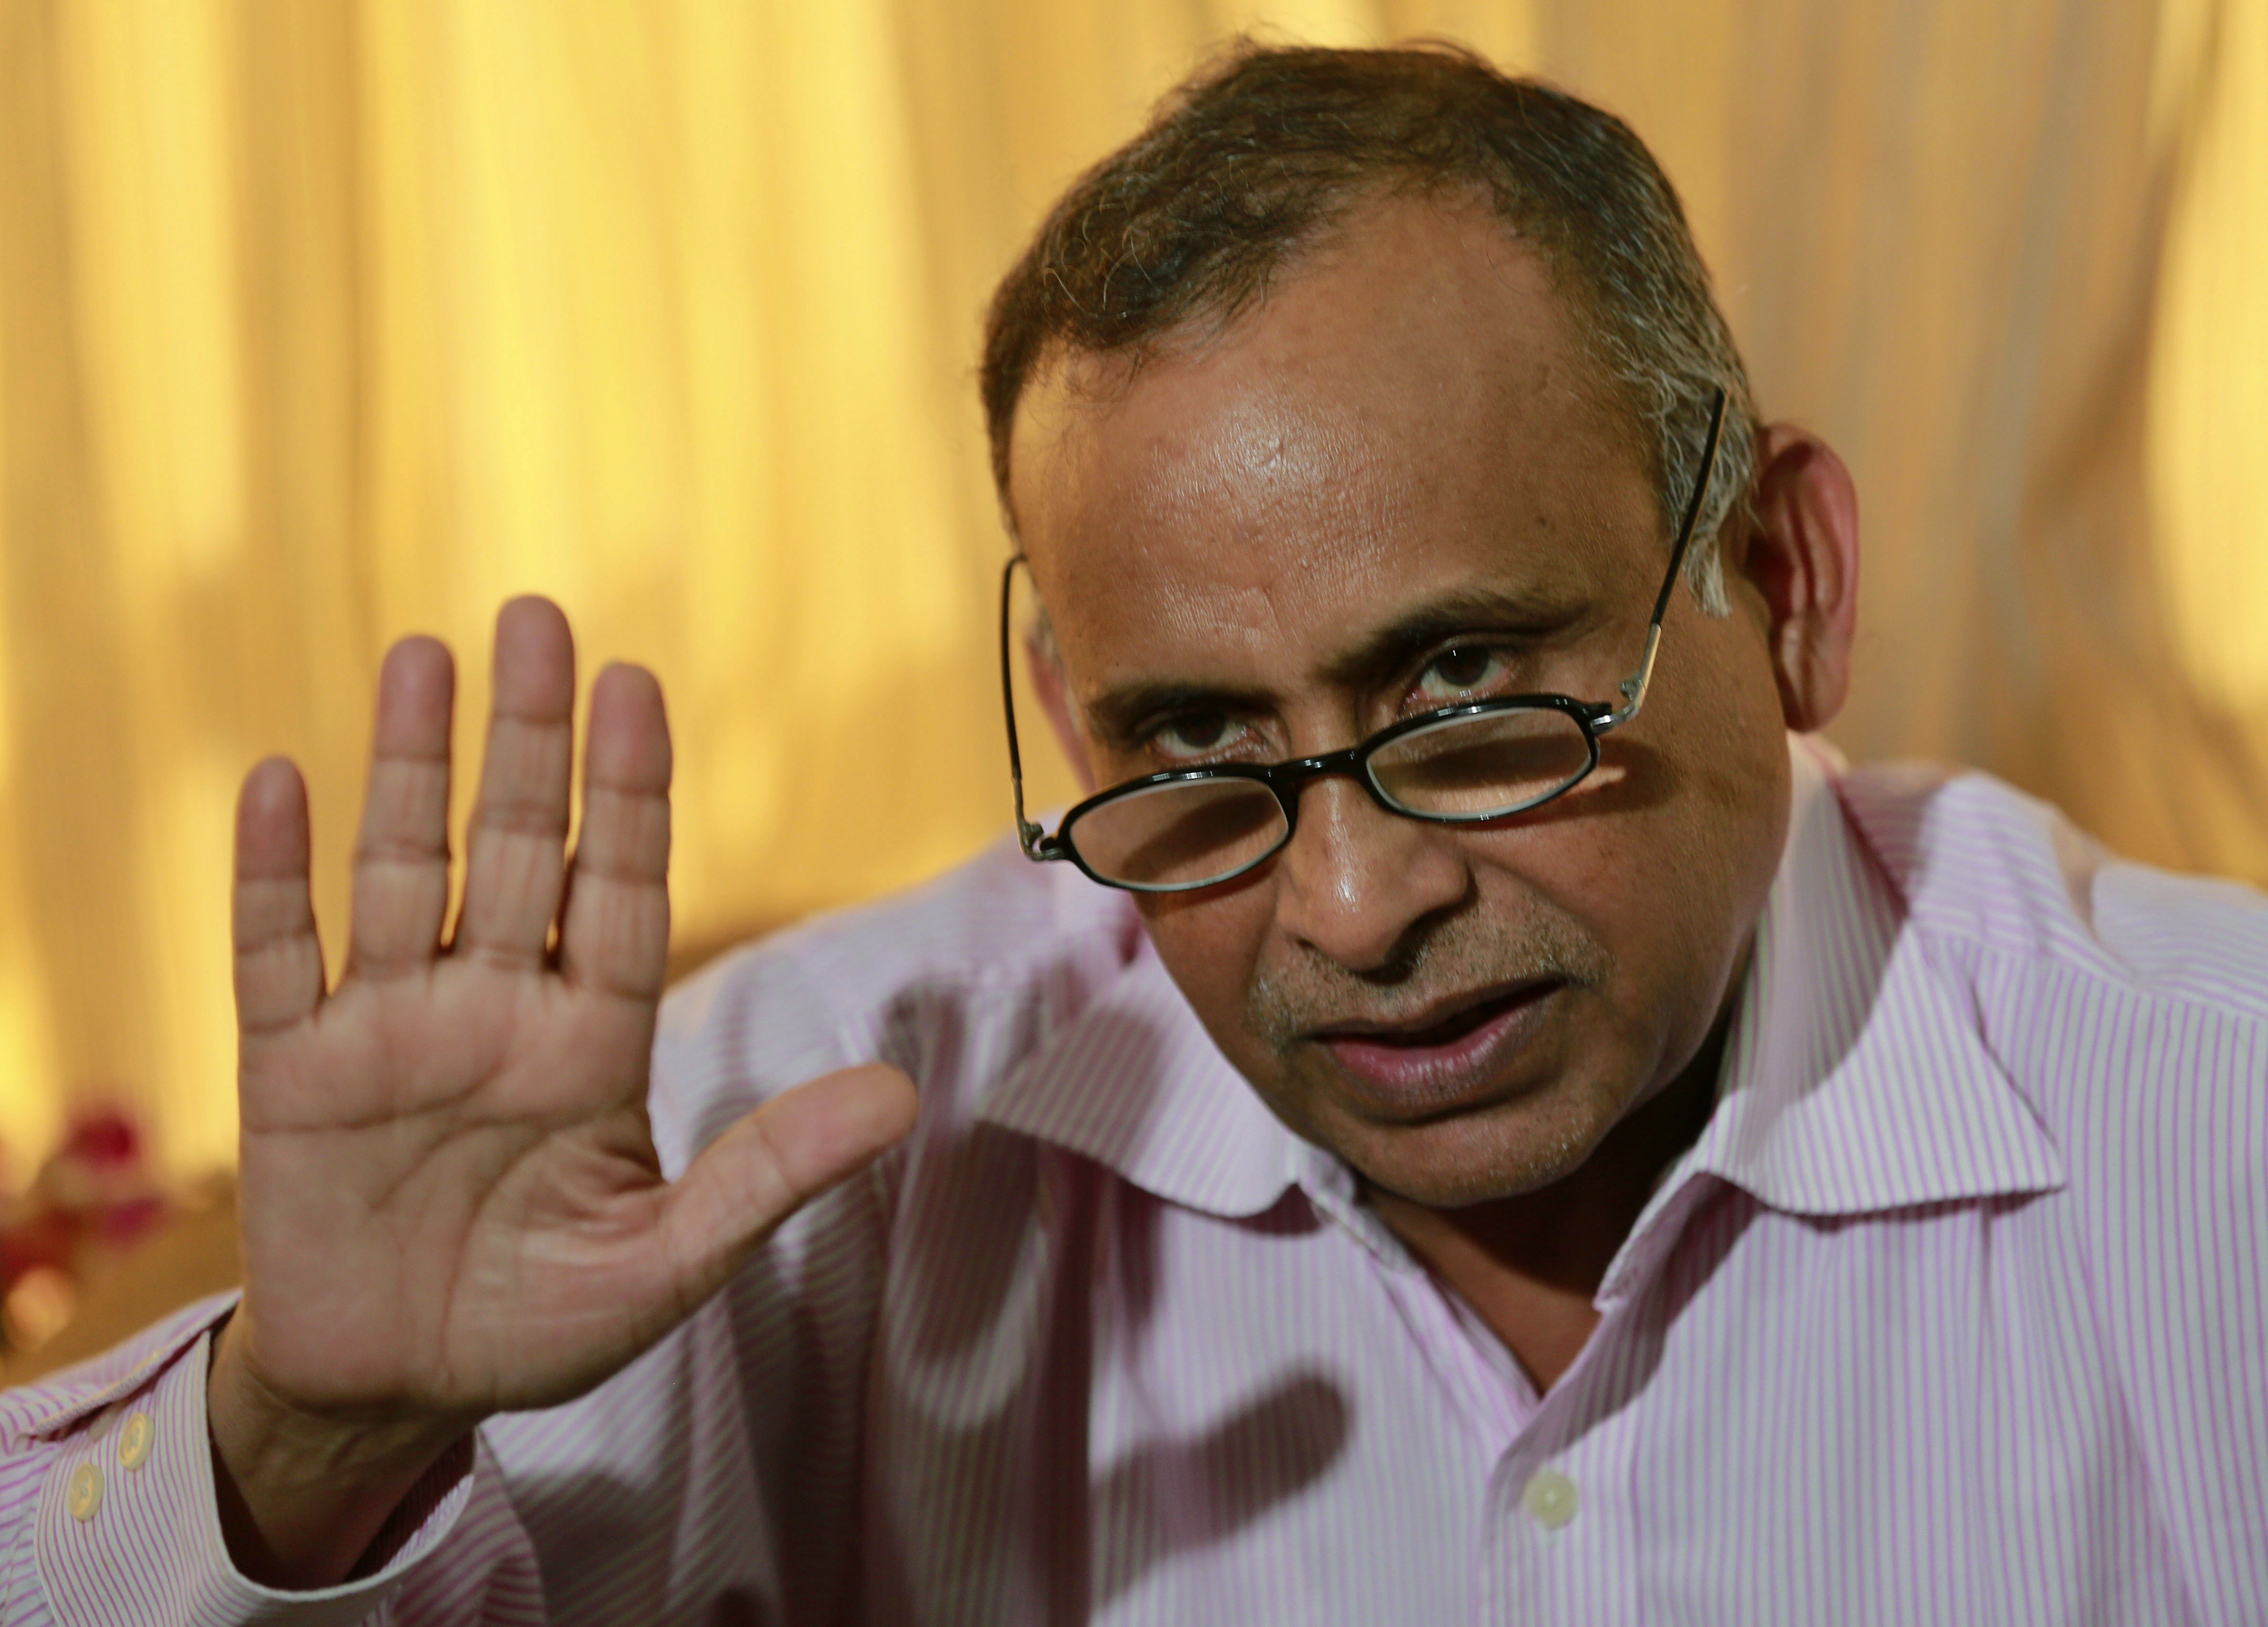 Uttam Khobragade, father of Indian diplomat Devyani Khobragade, who was arrested and strip-searched in New York, gestures as he speaks at a press conference in Mumbai, India, Thursday, Dec. 19, 2013. The case has sparked a diplomatic furor between the United States and India, which is incensed over what its officials describe as degrading treatment of India's deputy consul general in New York. (AP Photo/Rafiq Maqbool)